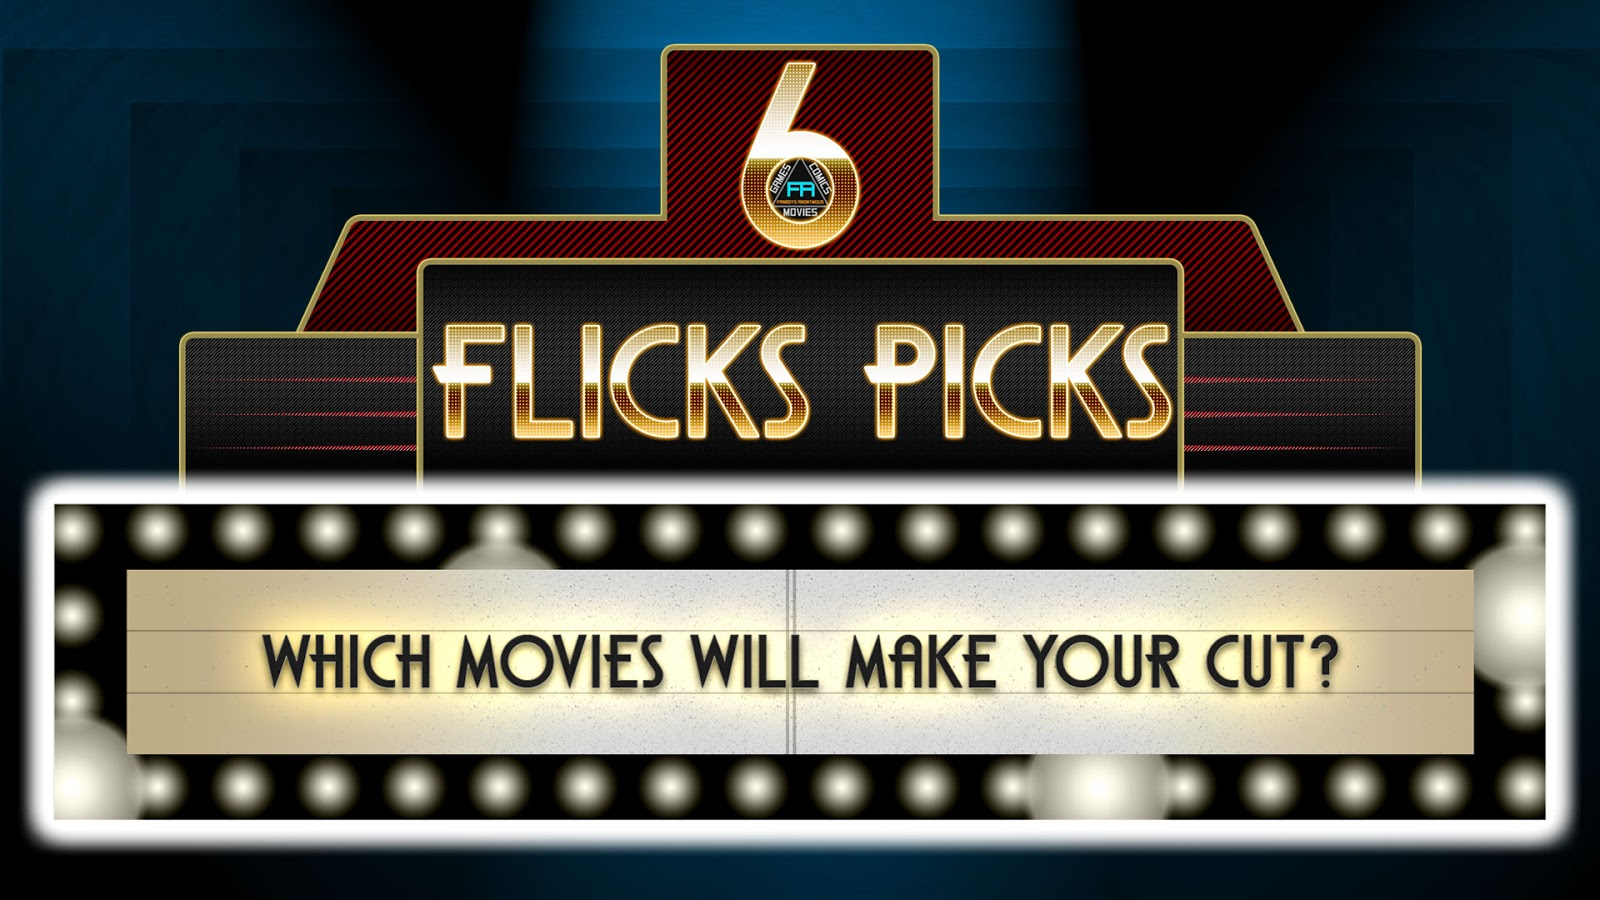 What movies are coming out February 2017 6 Flicks Picks